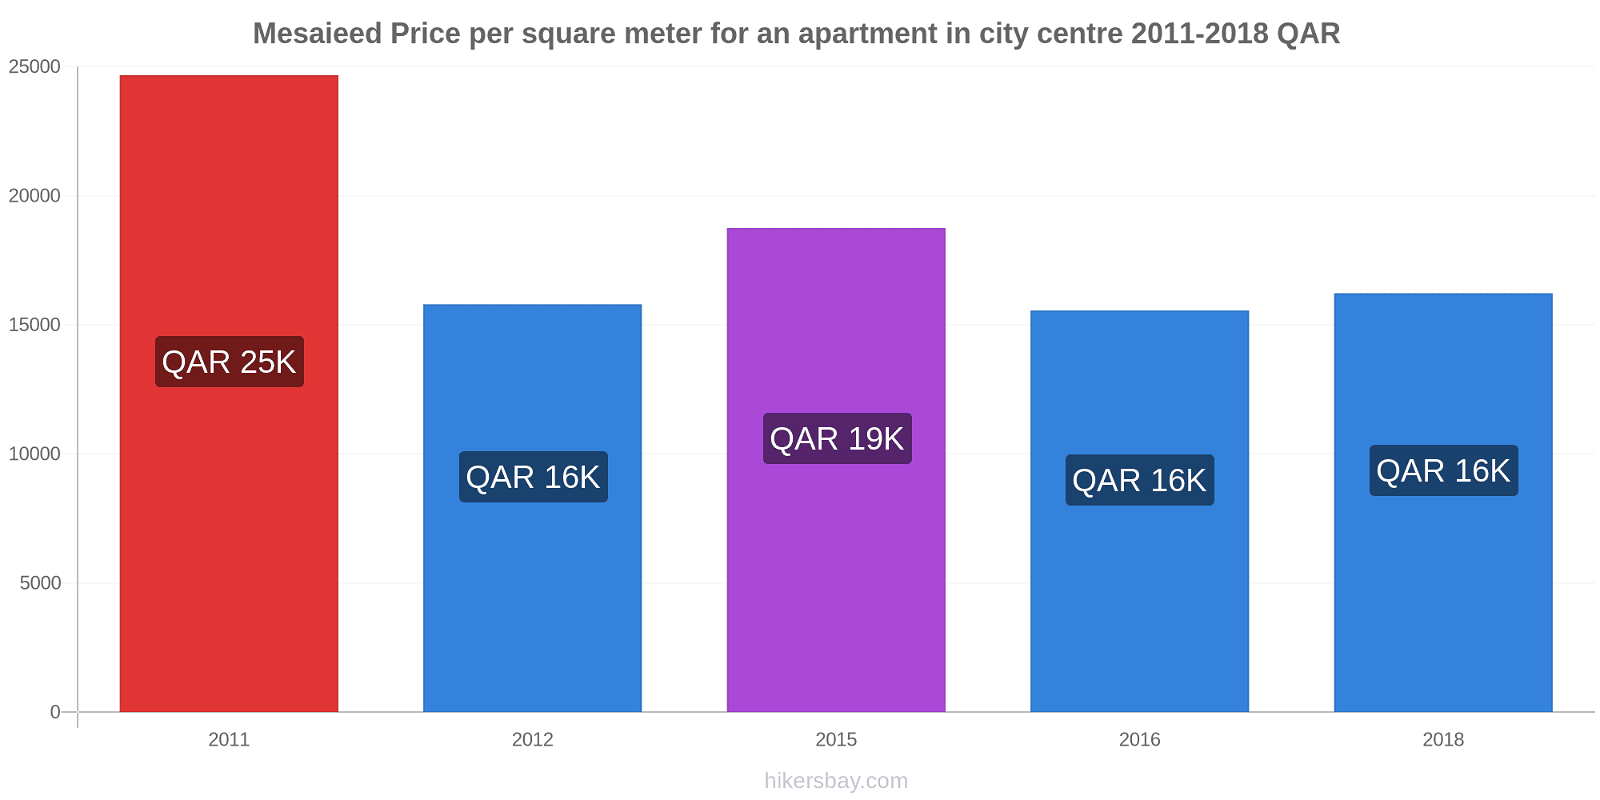 Mesaieed price changes Price per square meter for an apartment in city centre hikersbay.com